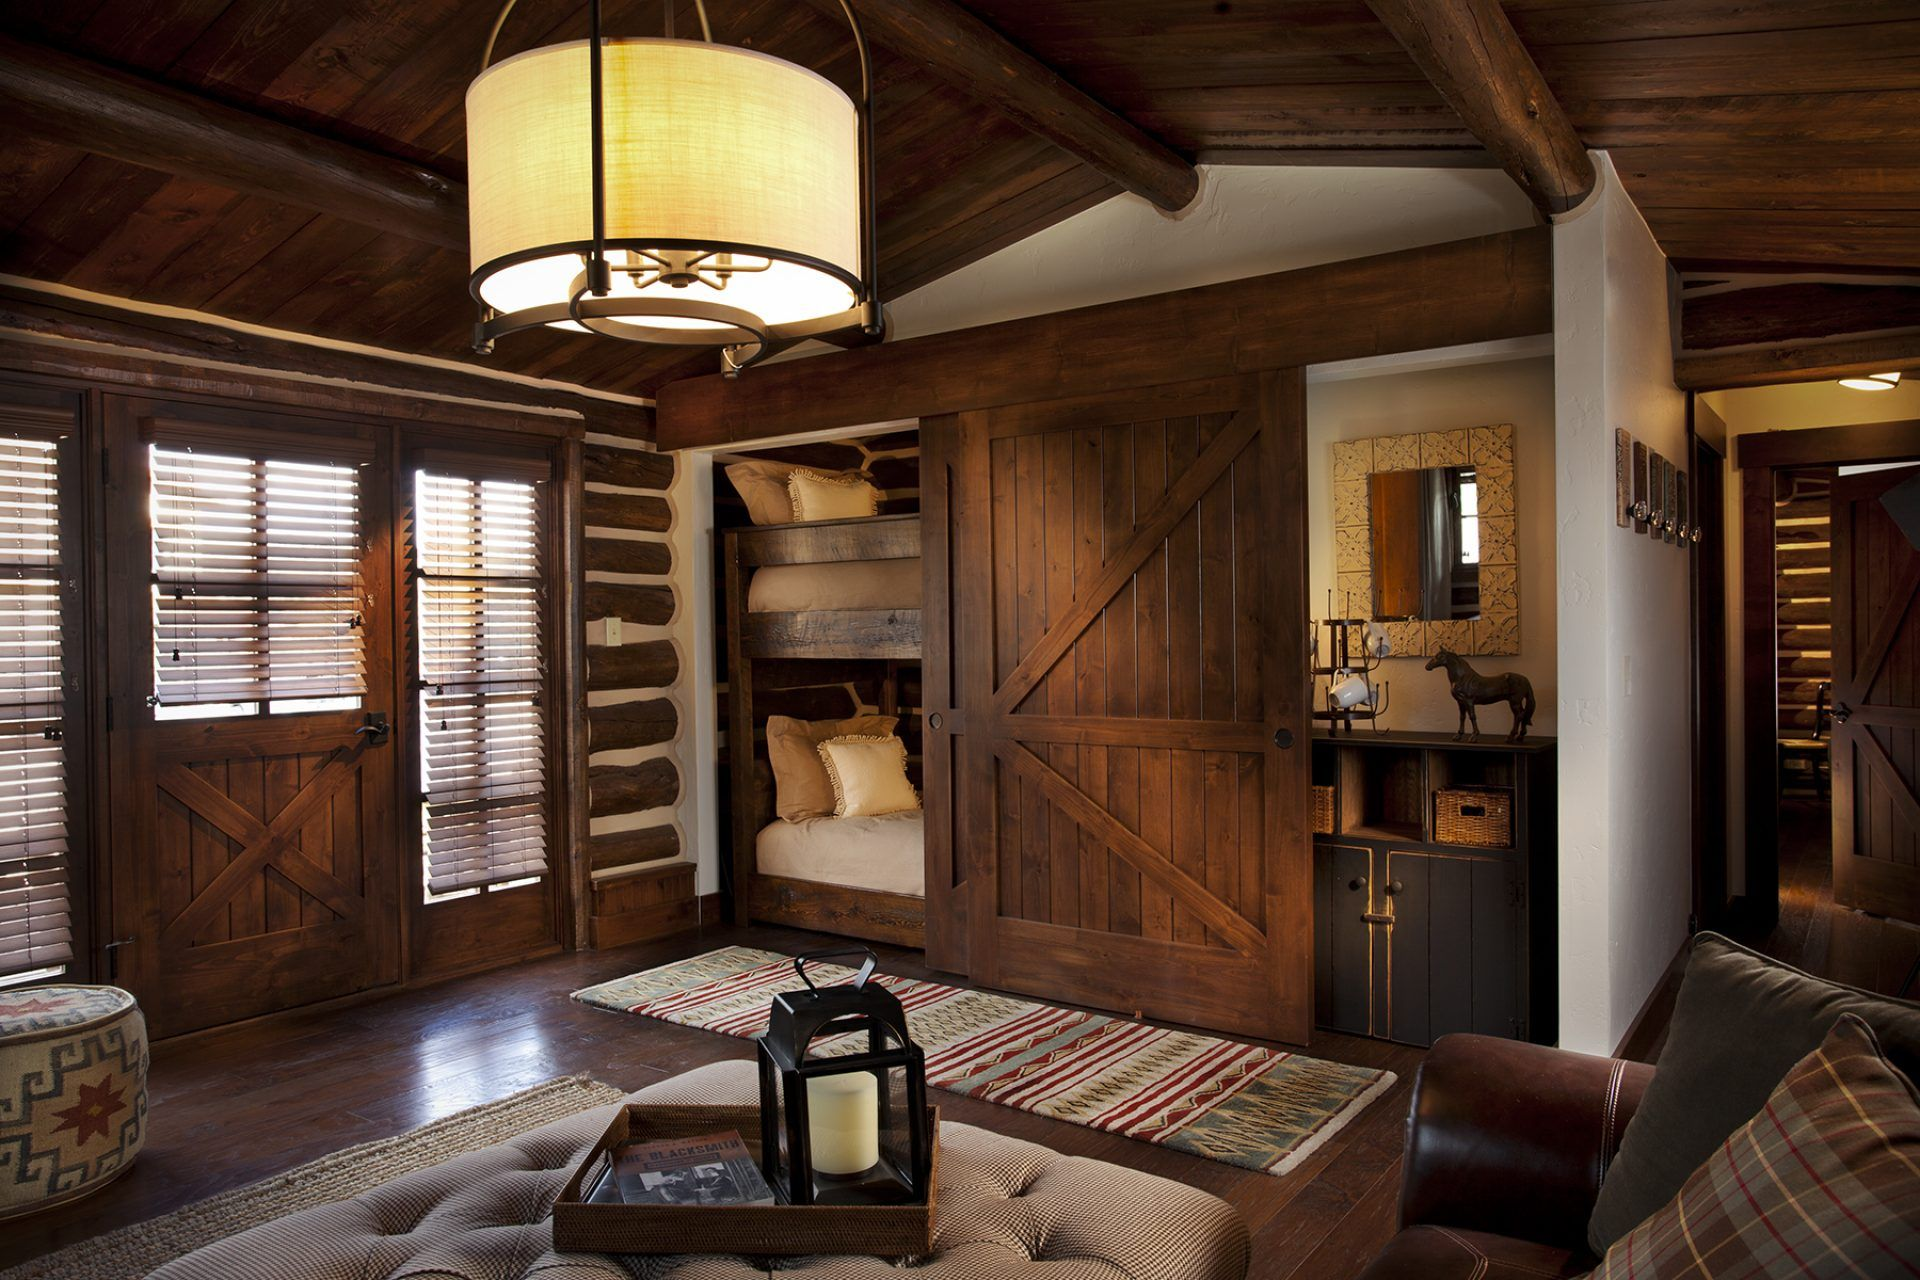 What About A Guest Bed Tucked Away In A Room